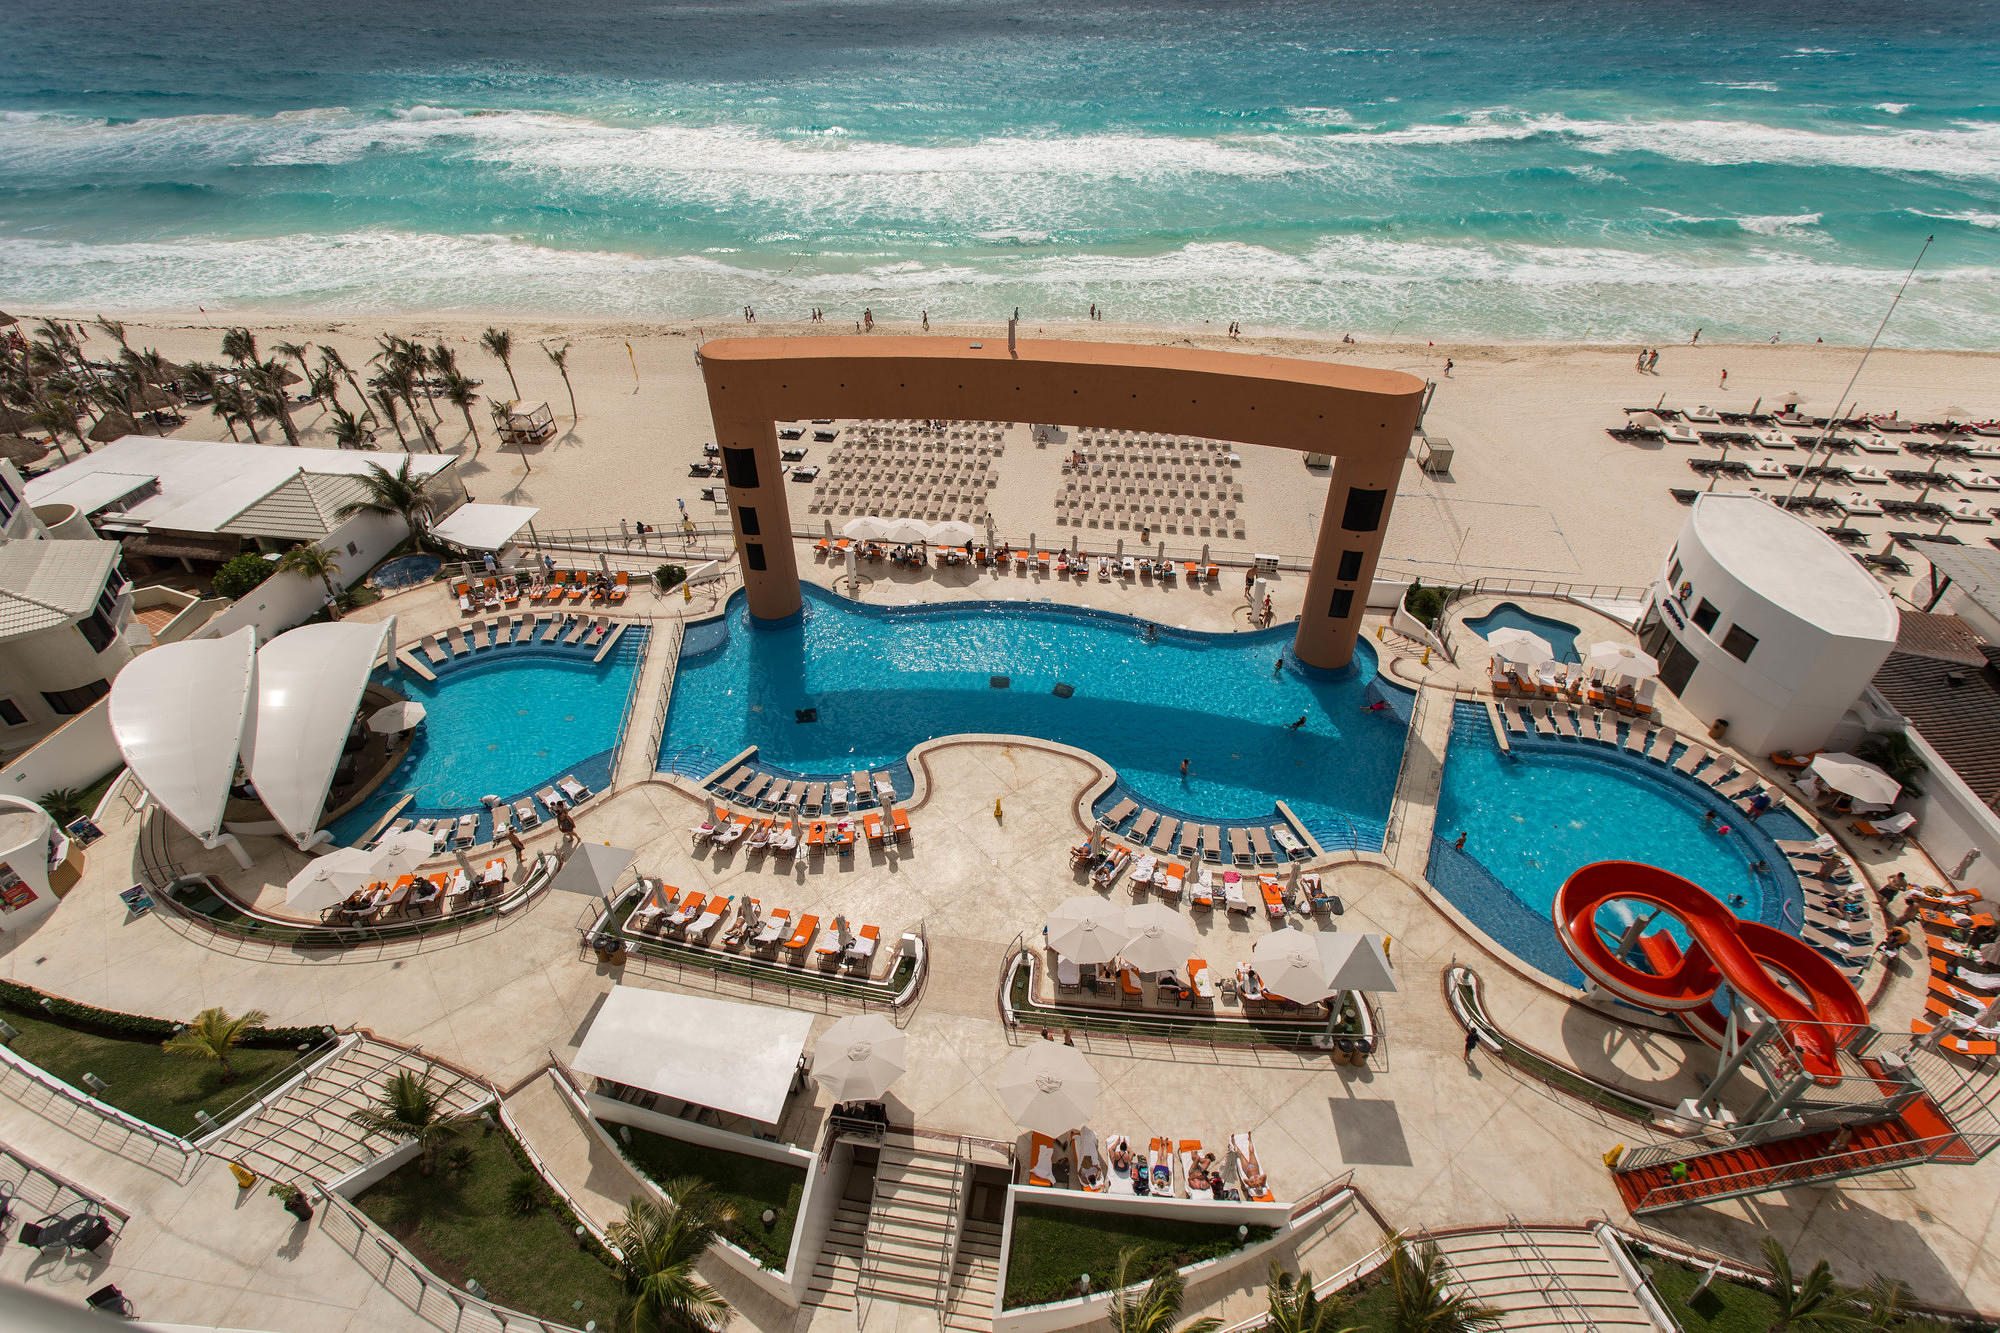 The pool and sea at the Beach Palace Cancun